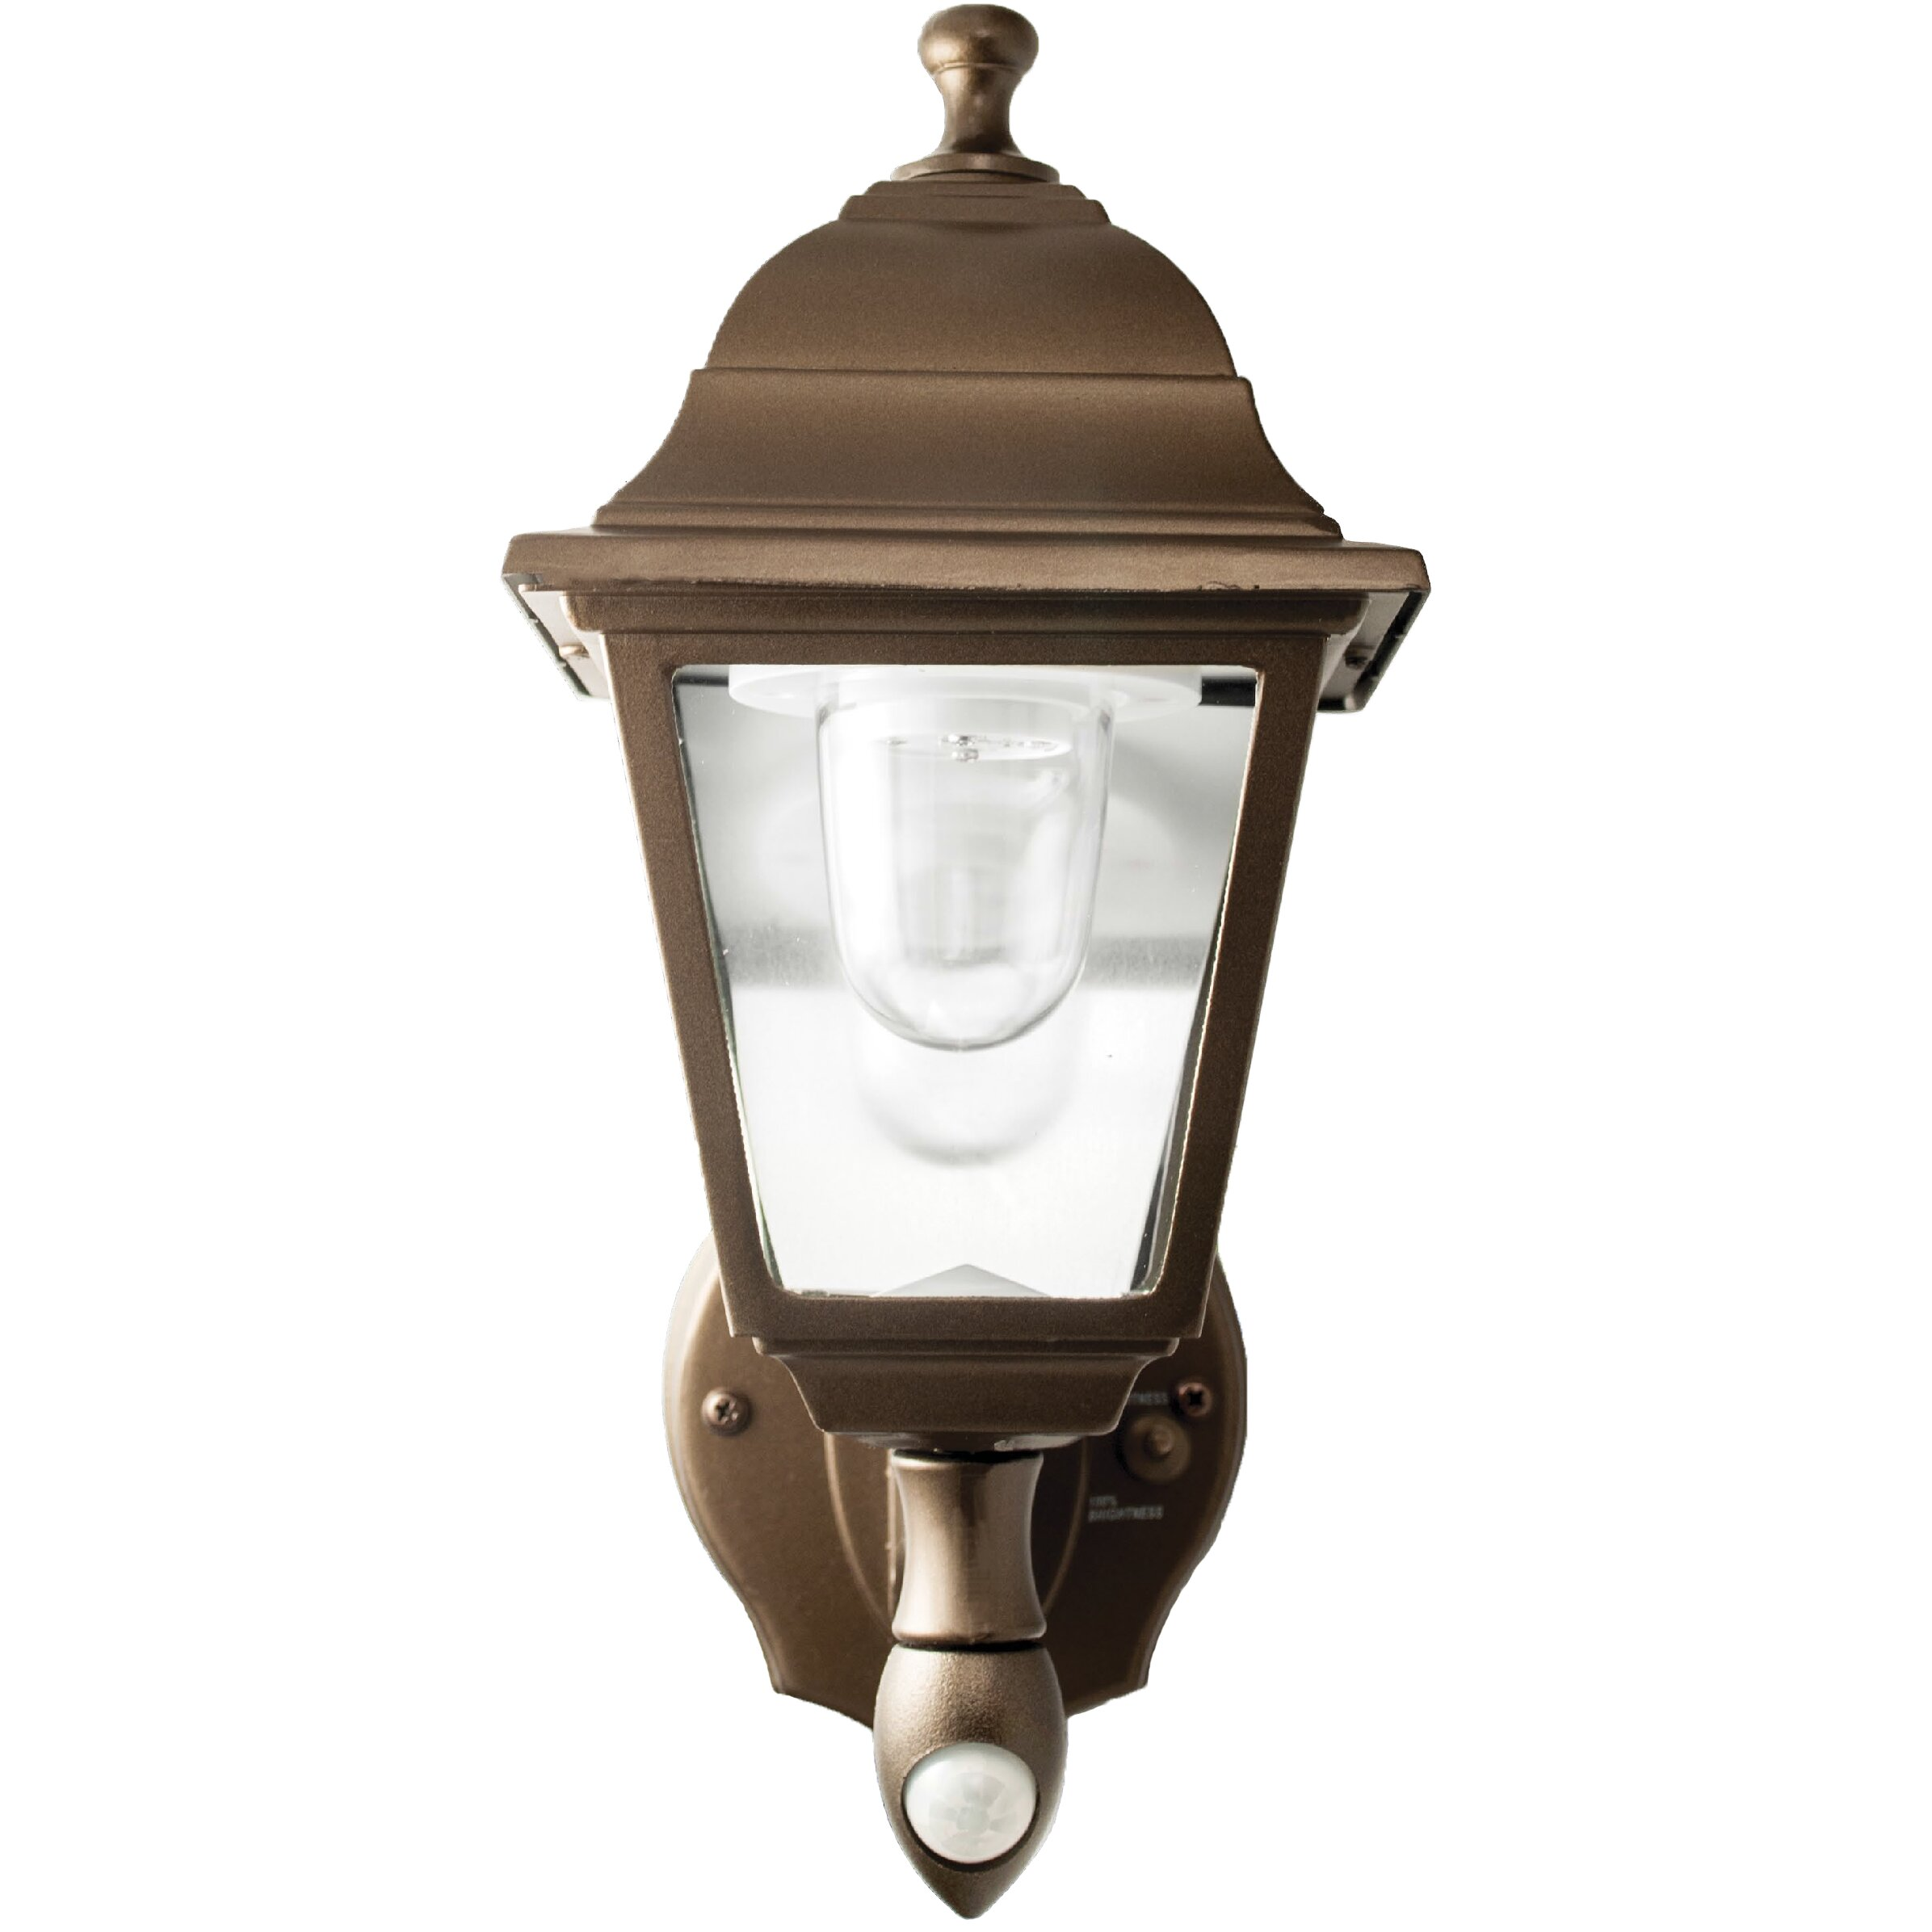 Maxsa battery powered motion activated 1 light outdoor sconce reviews wayfair - Battery operated wall light sconces ...